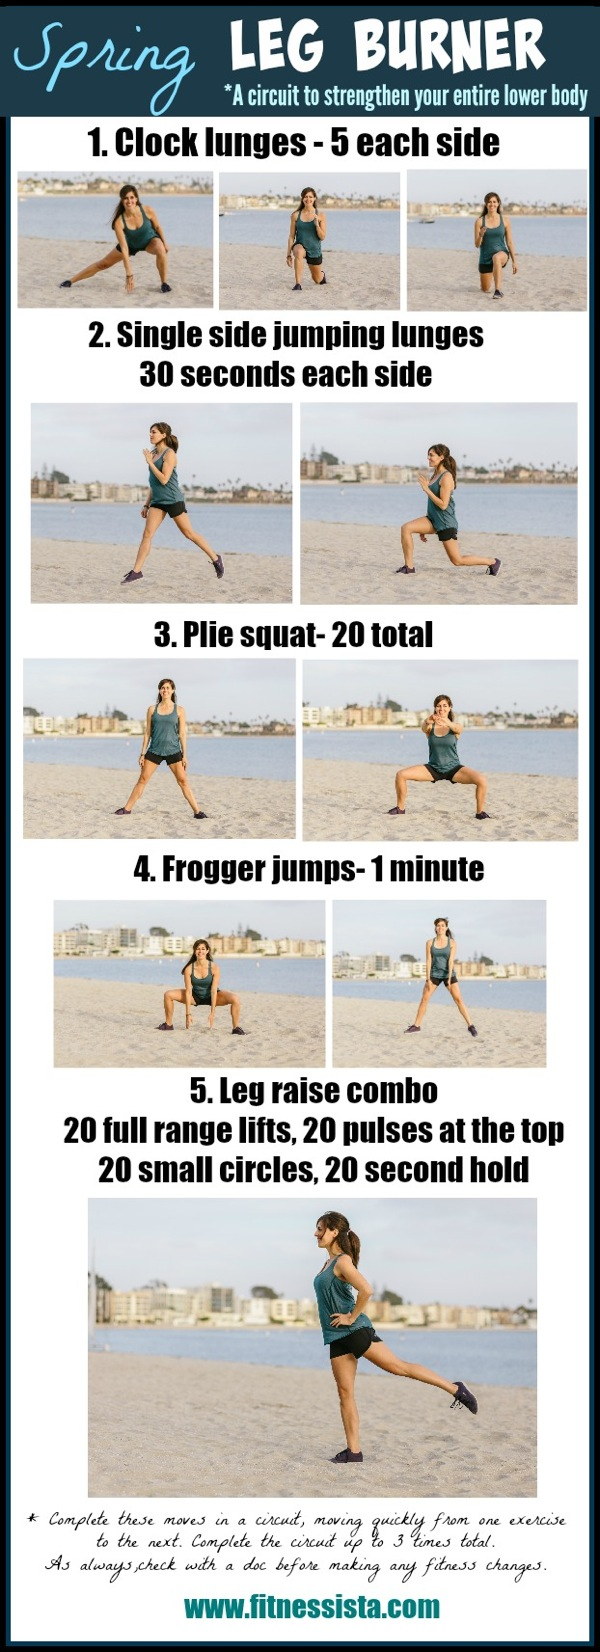 Spring leg burner - a no equipment leg workout you can do outside. fitnessista.com